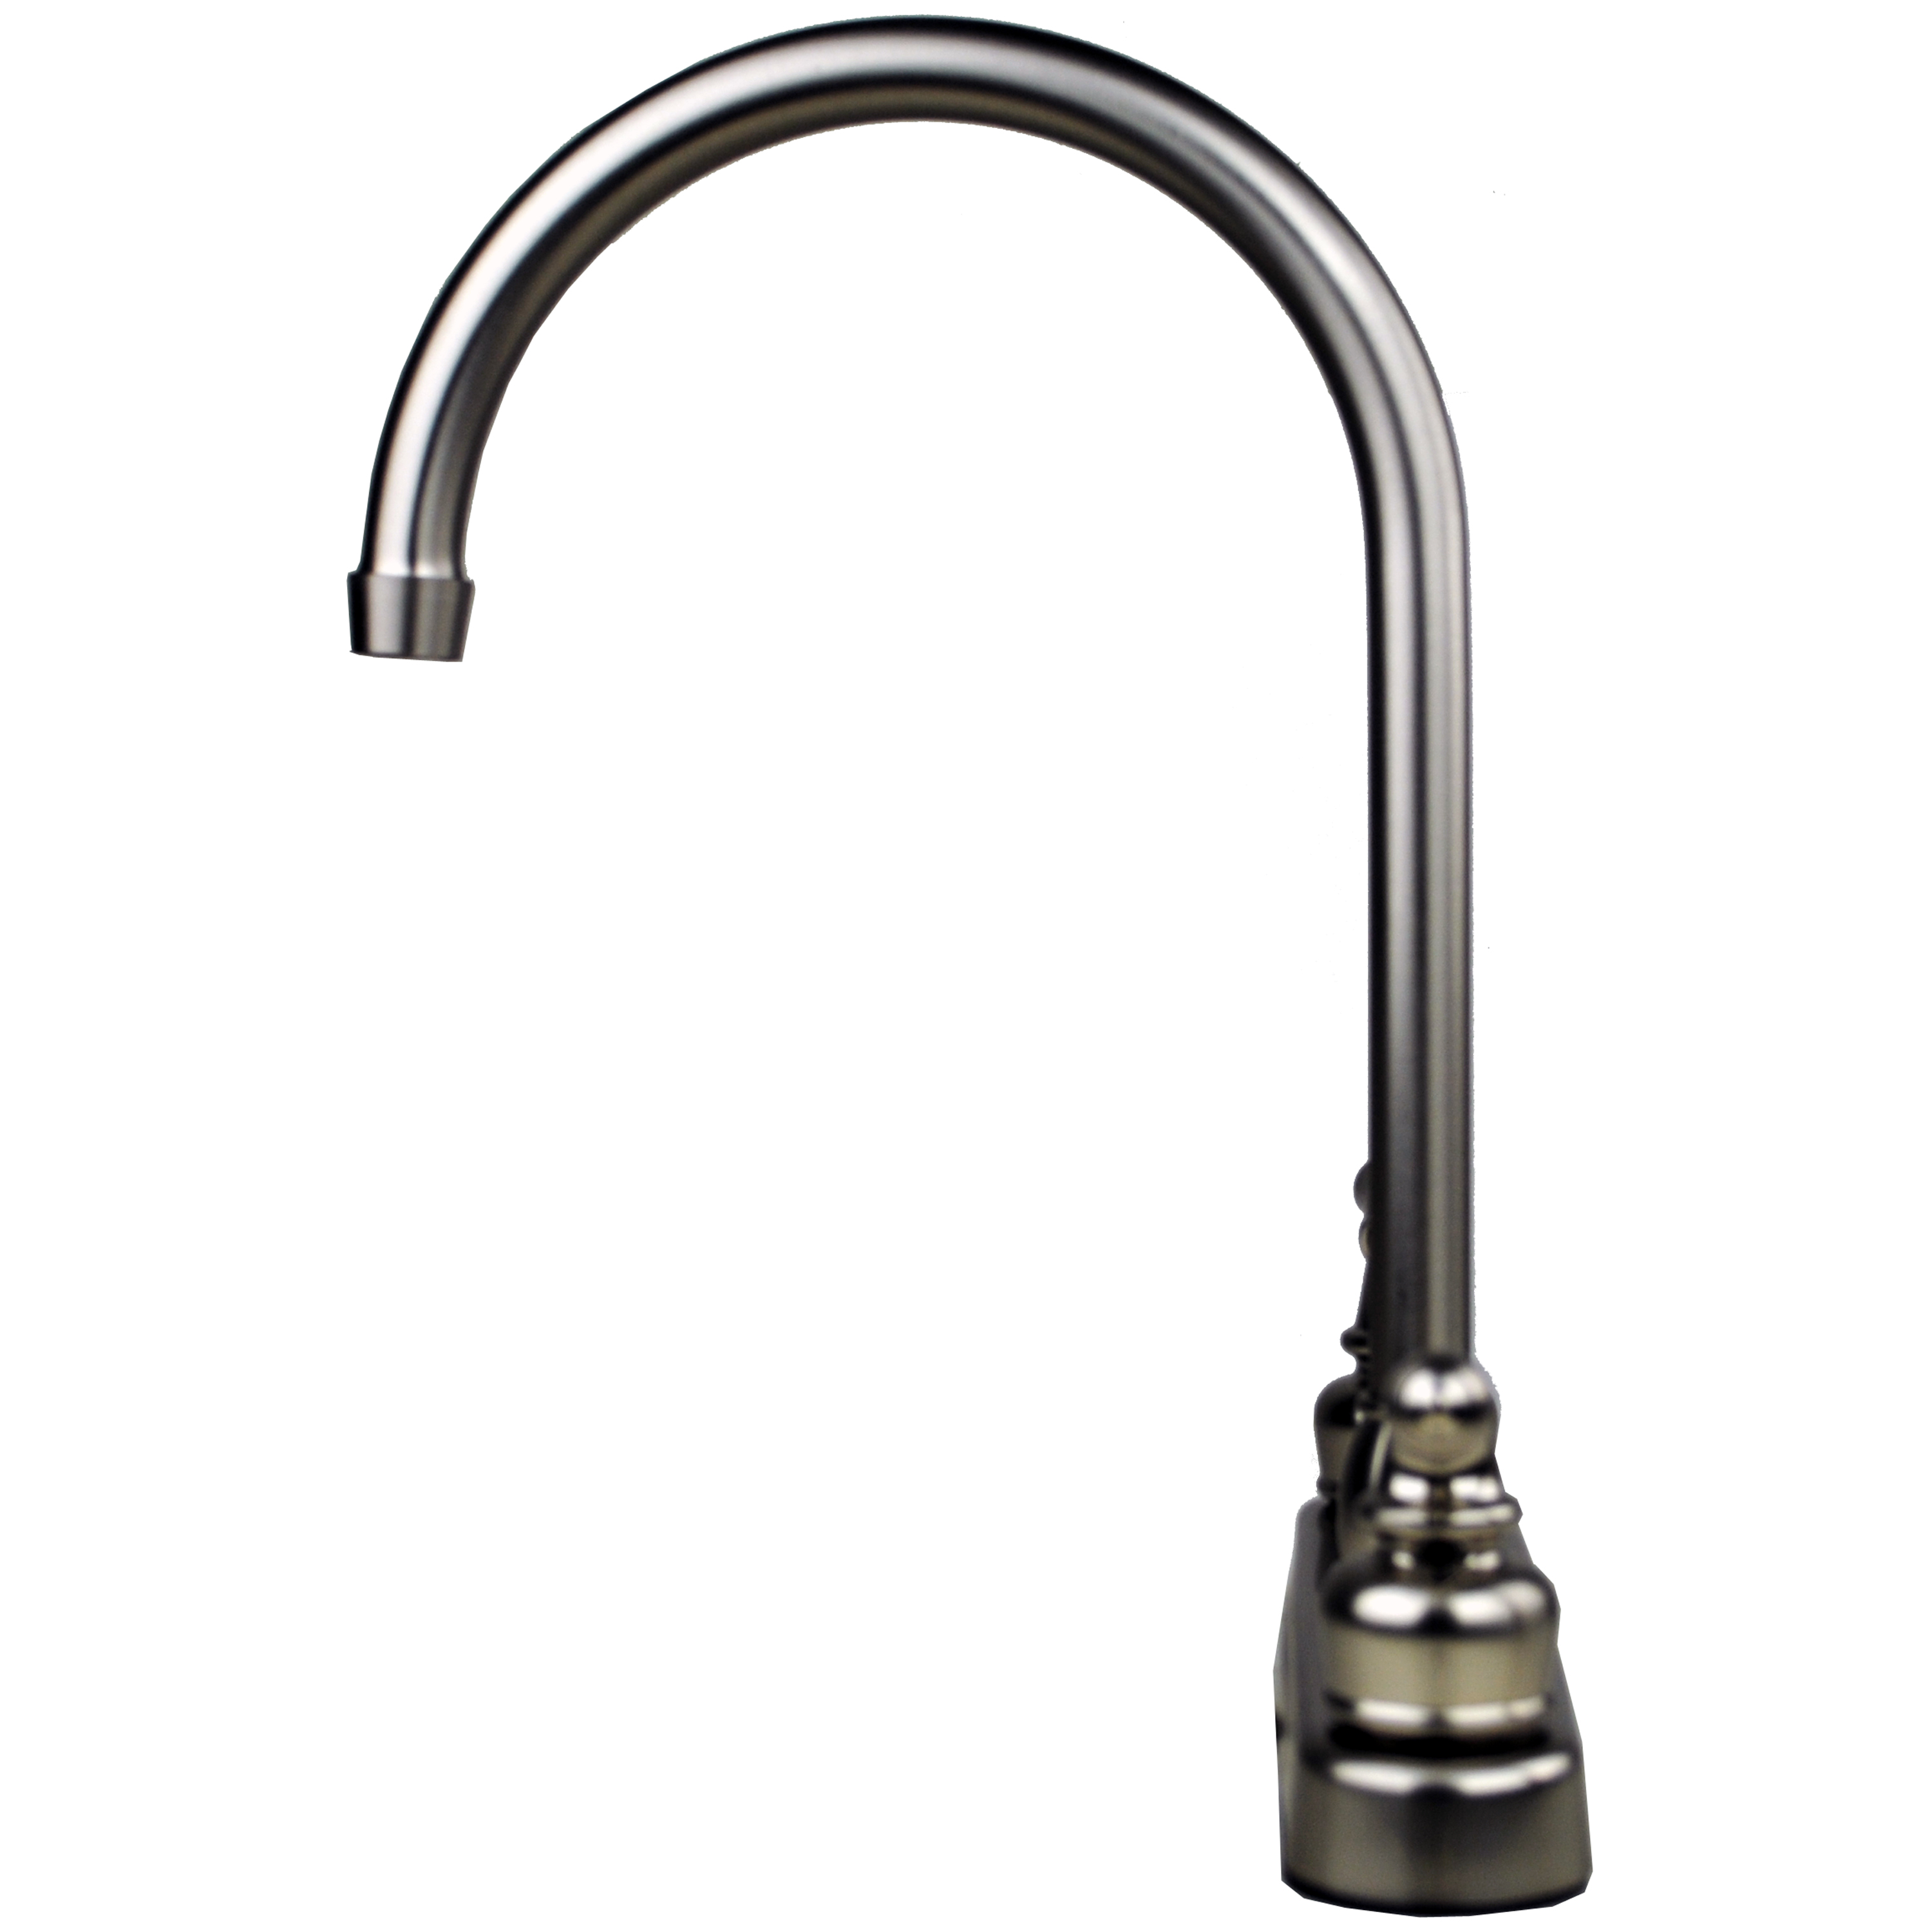 Kitchen Faucets For Mobile Homes: RV/Mobile Home Classic High Arc Swivel Kitchen Faucet